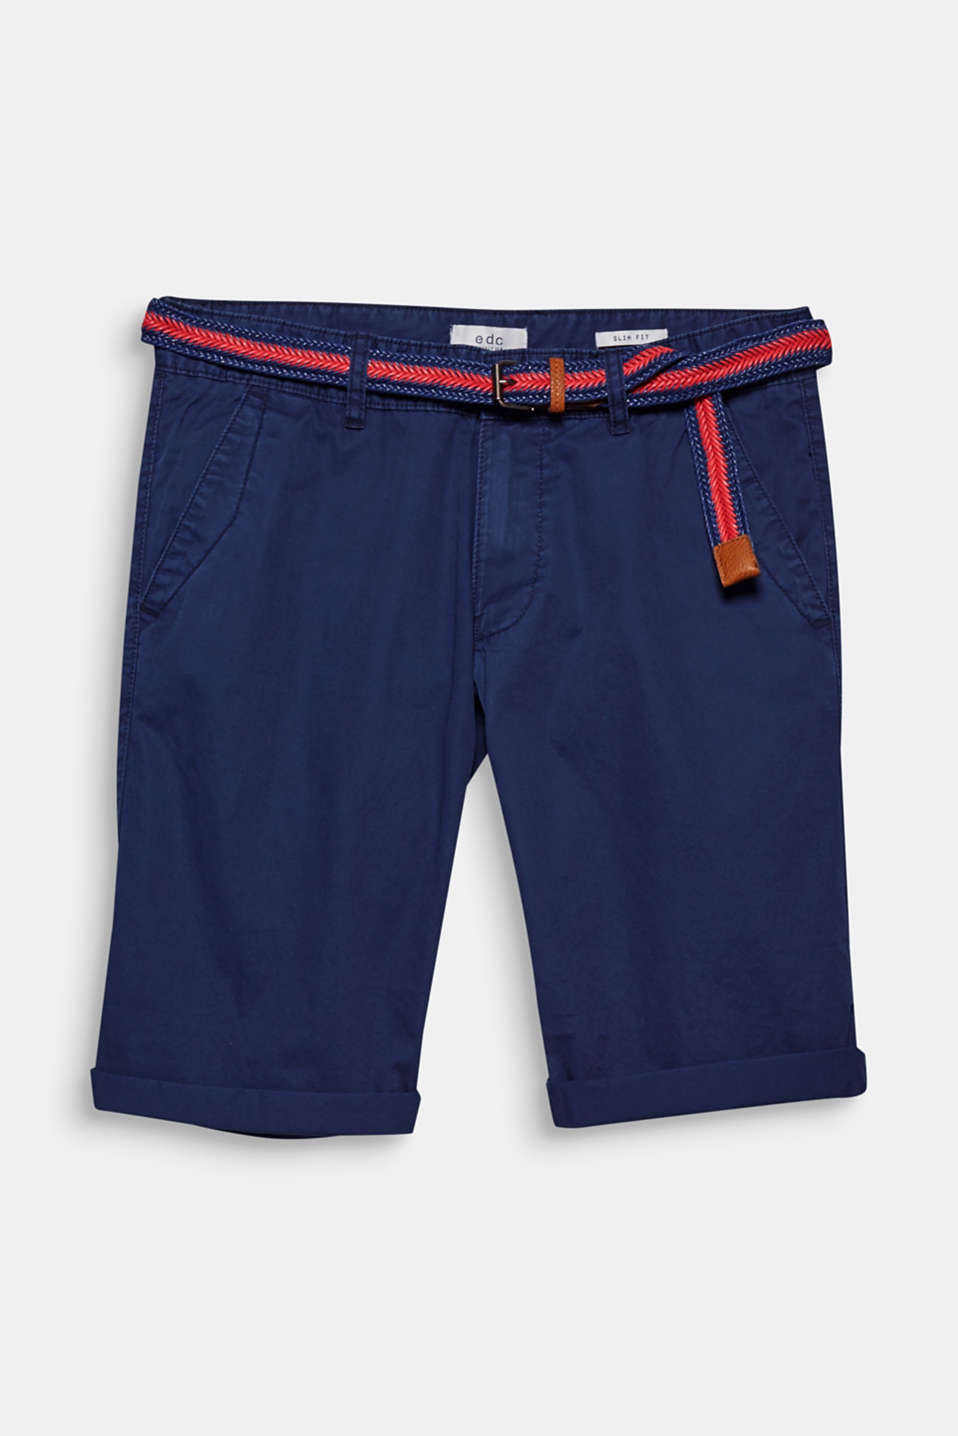 The timeless design of these chino shorts is completed by the two-tone braided belt.